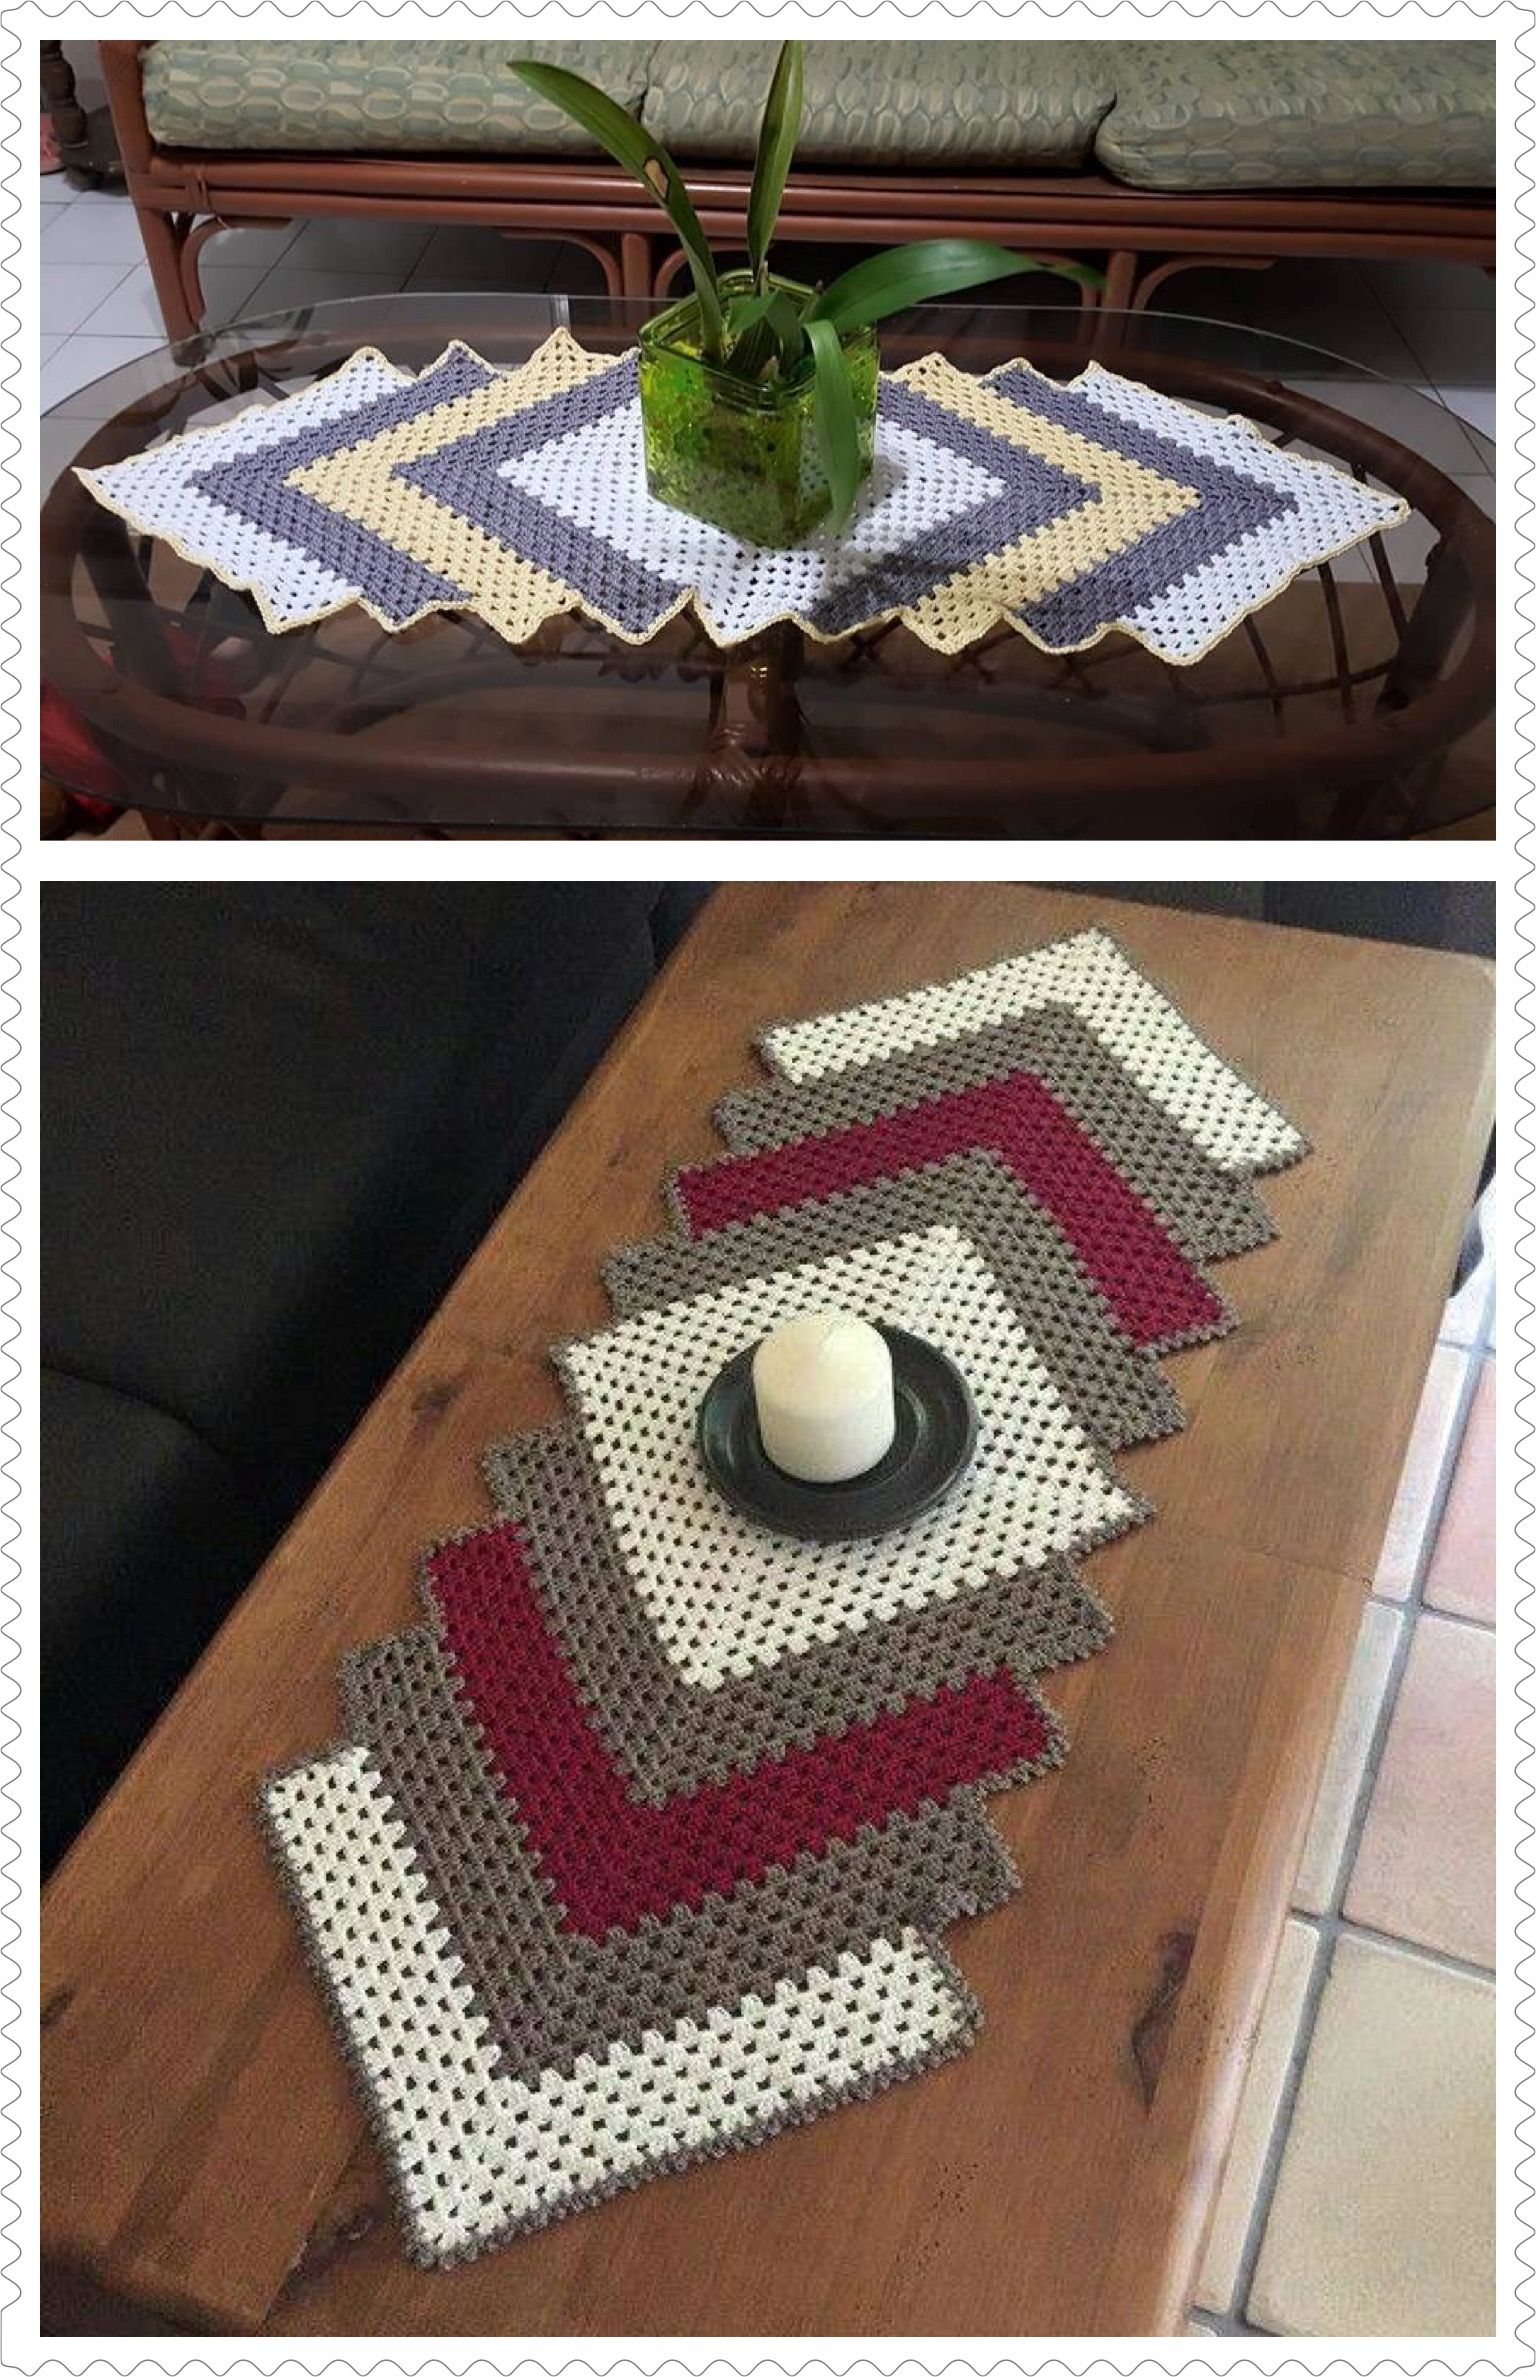 Drop In The Pond Runner Crafts Crochet Crochet Crochet Table